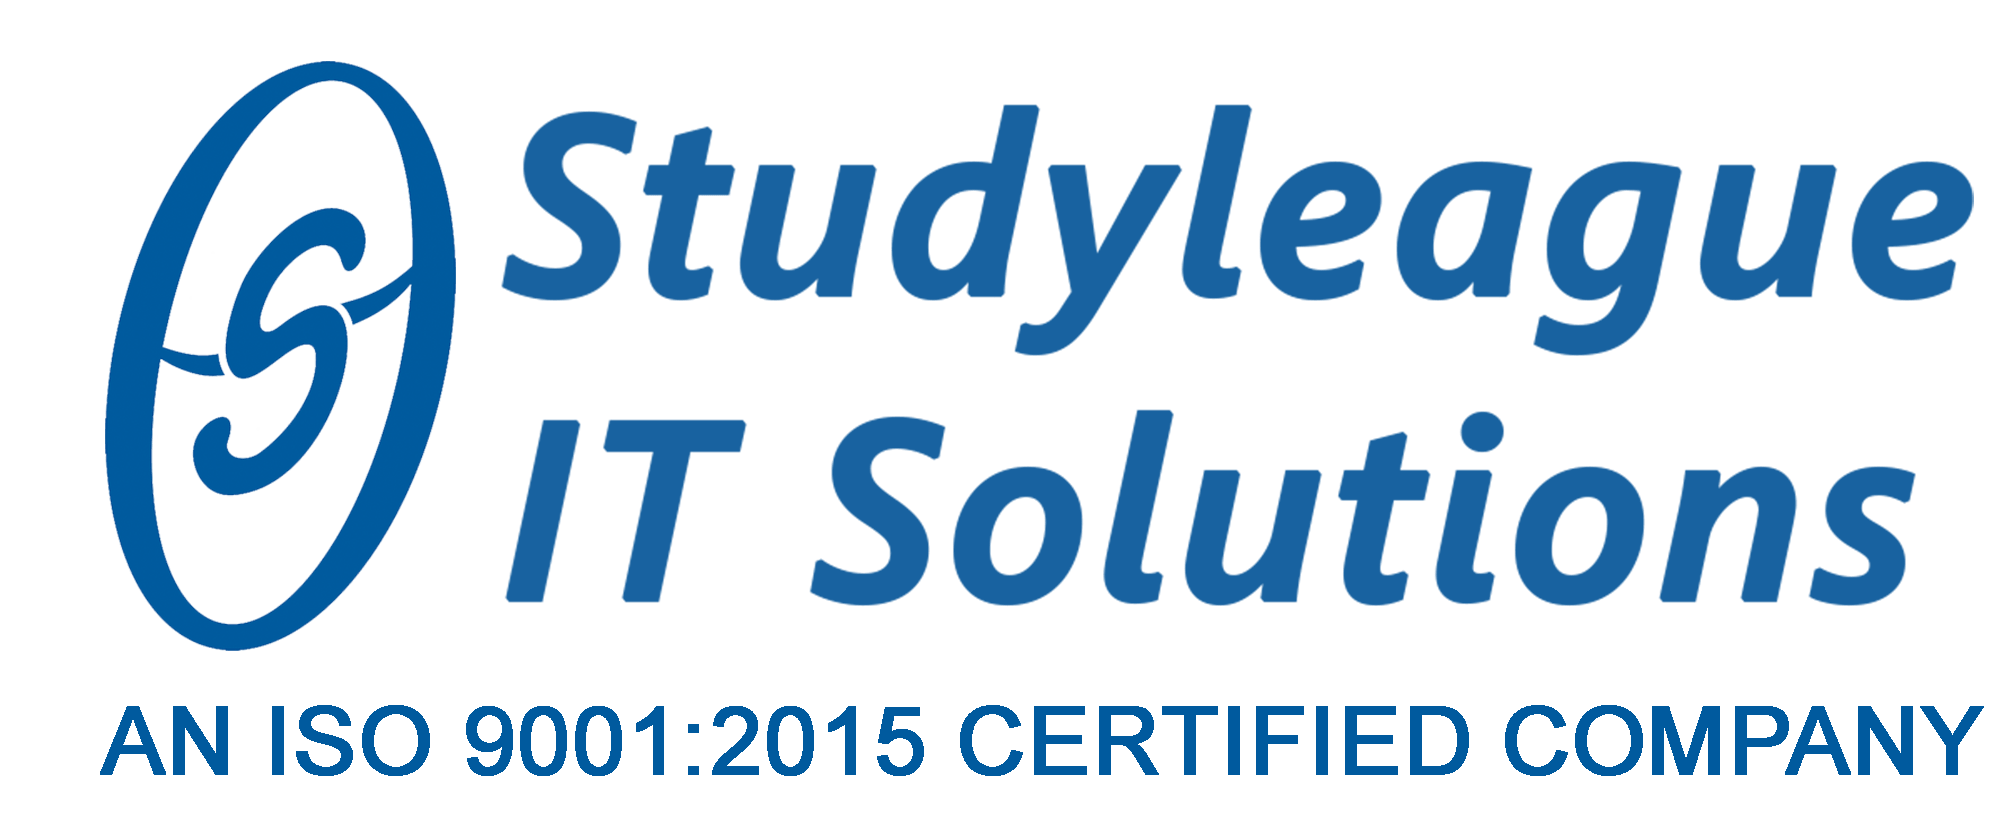 Studyleague IT Solutions